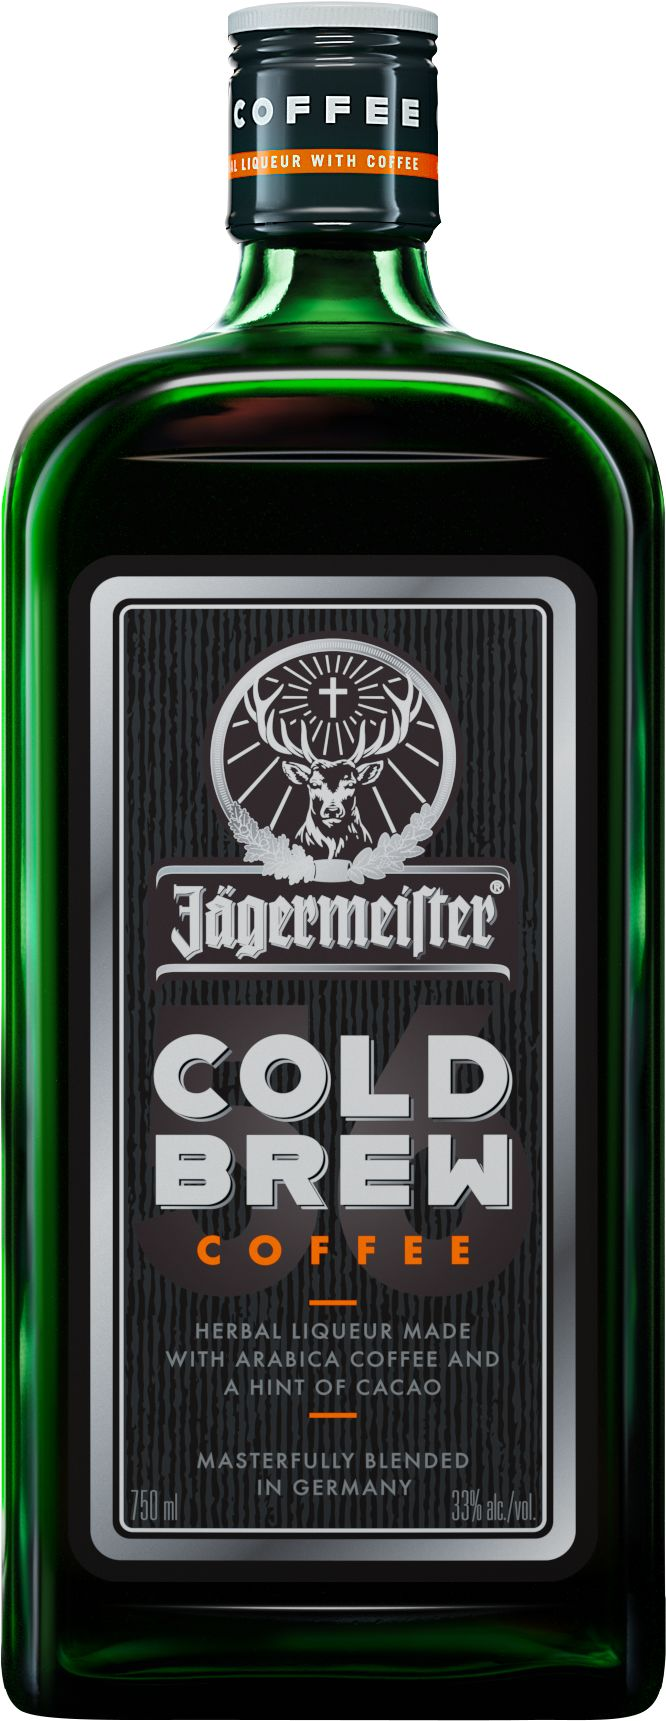 Liqueur-Infused Cold Brew Coffees